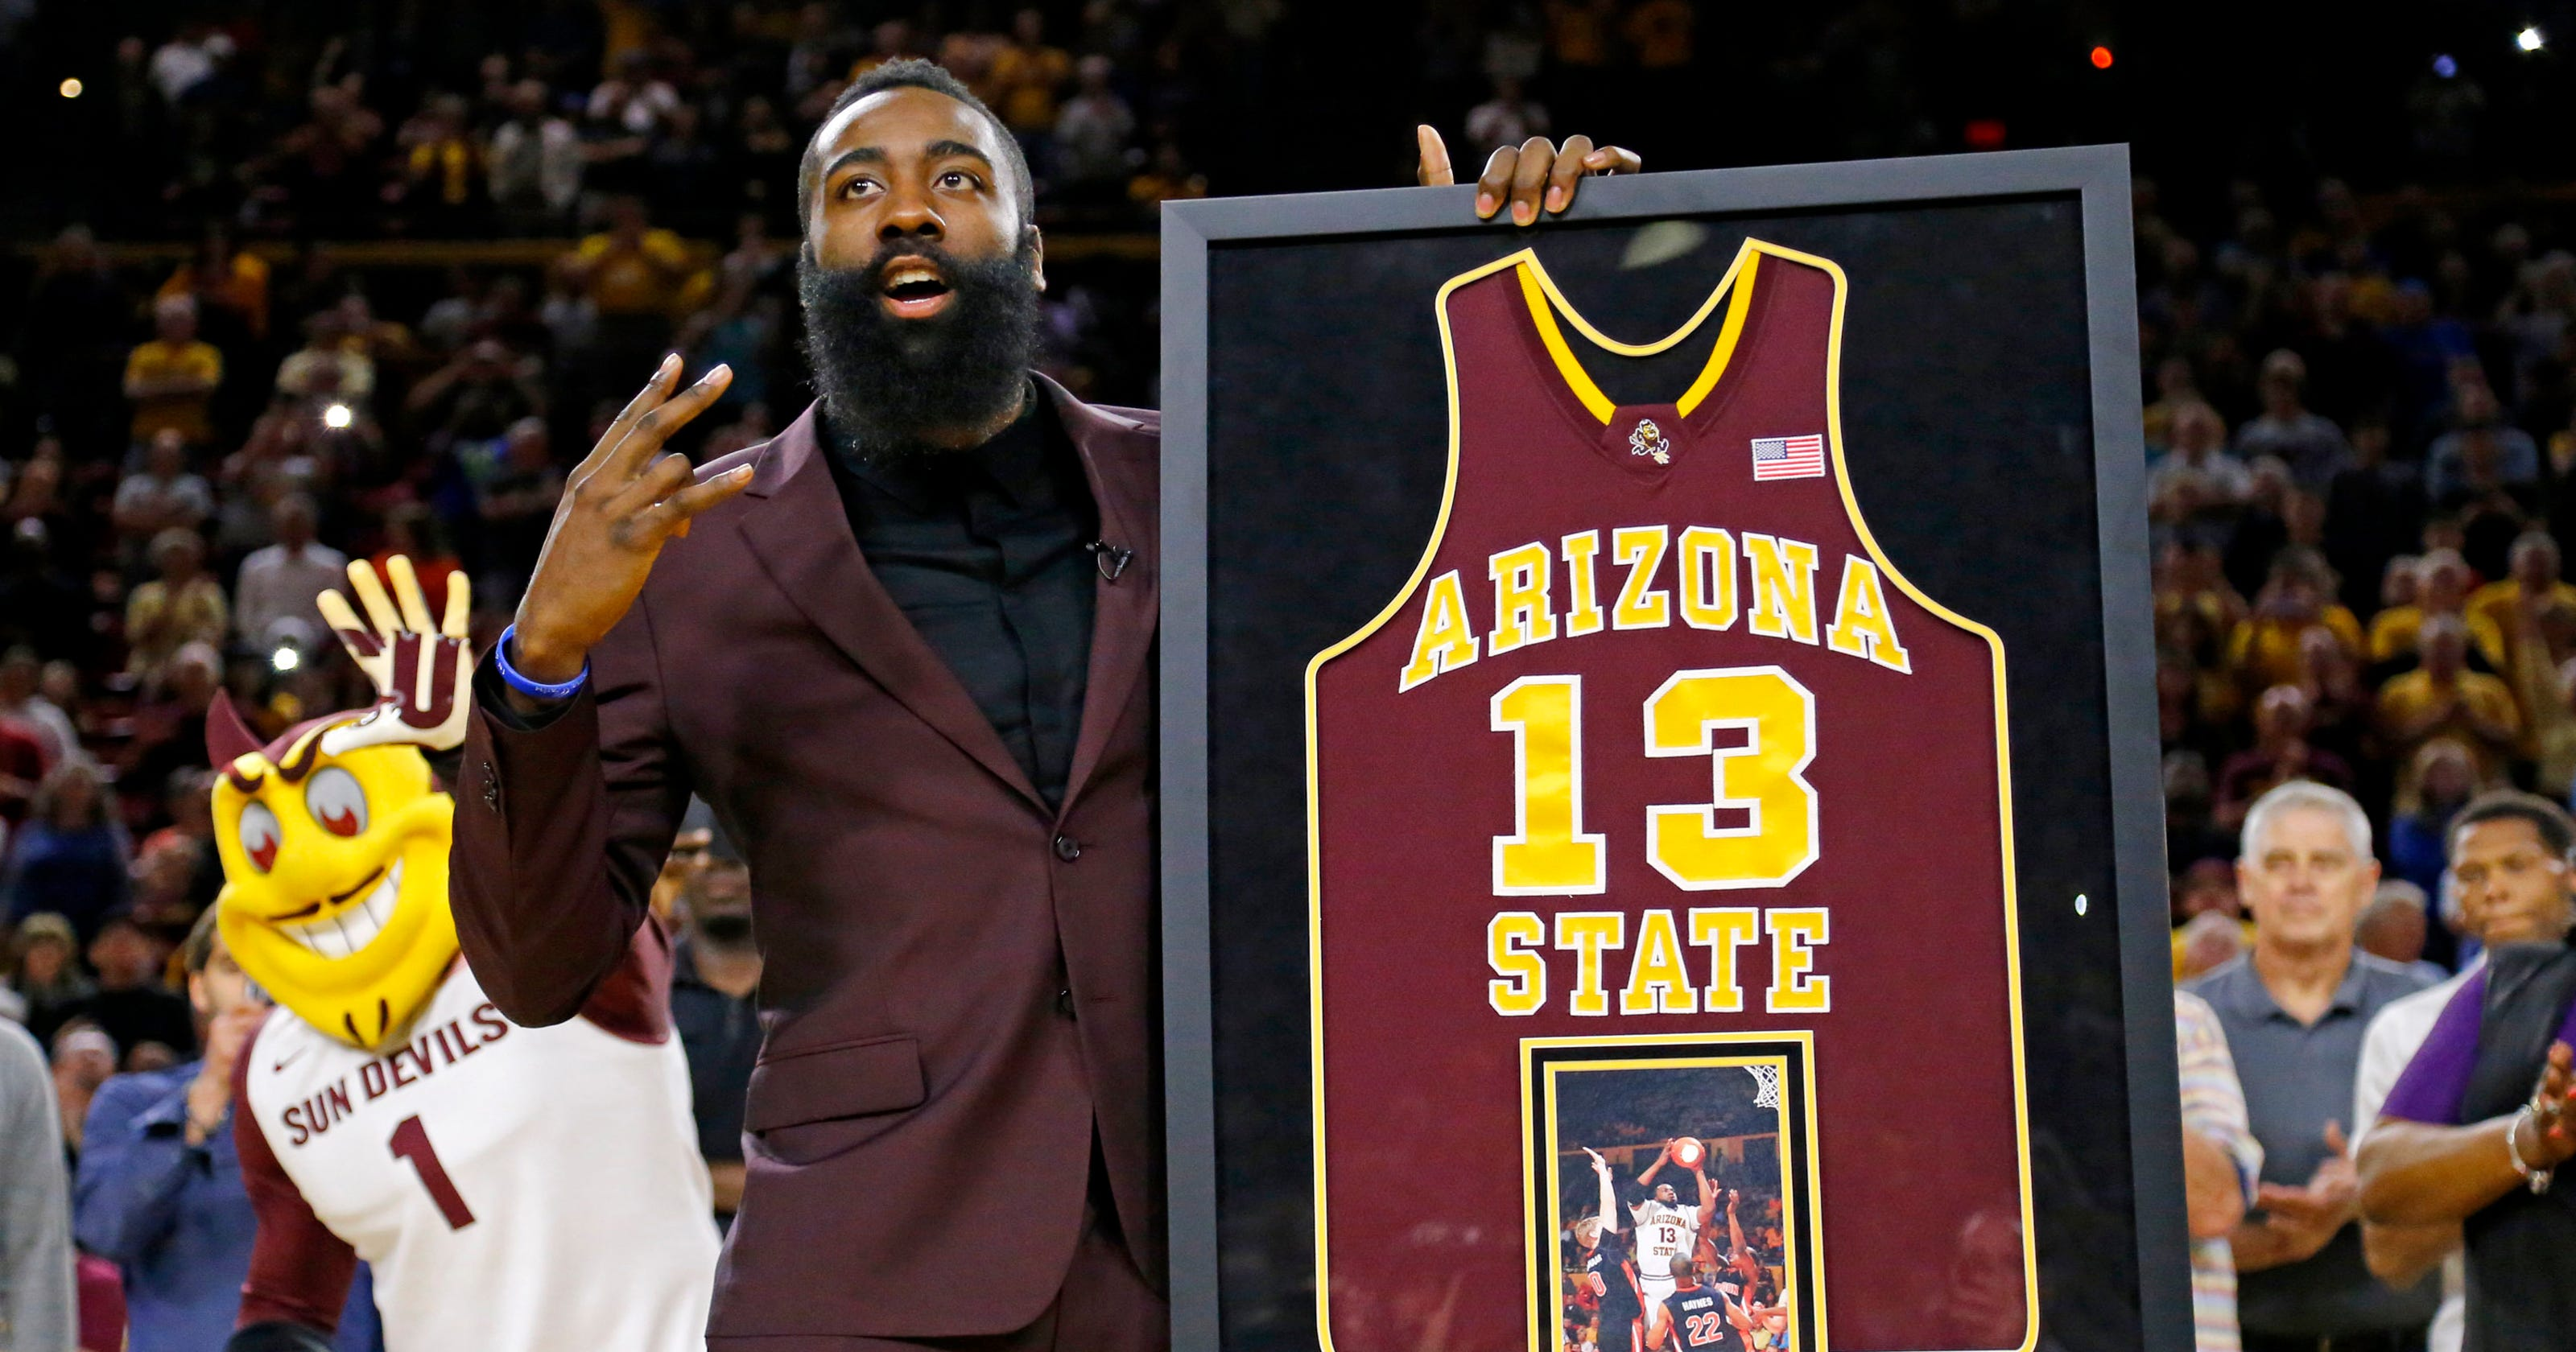 d21057f51d9 How James Harden foreshadowed his future during his time at ASU